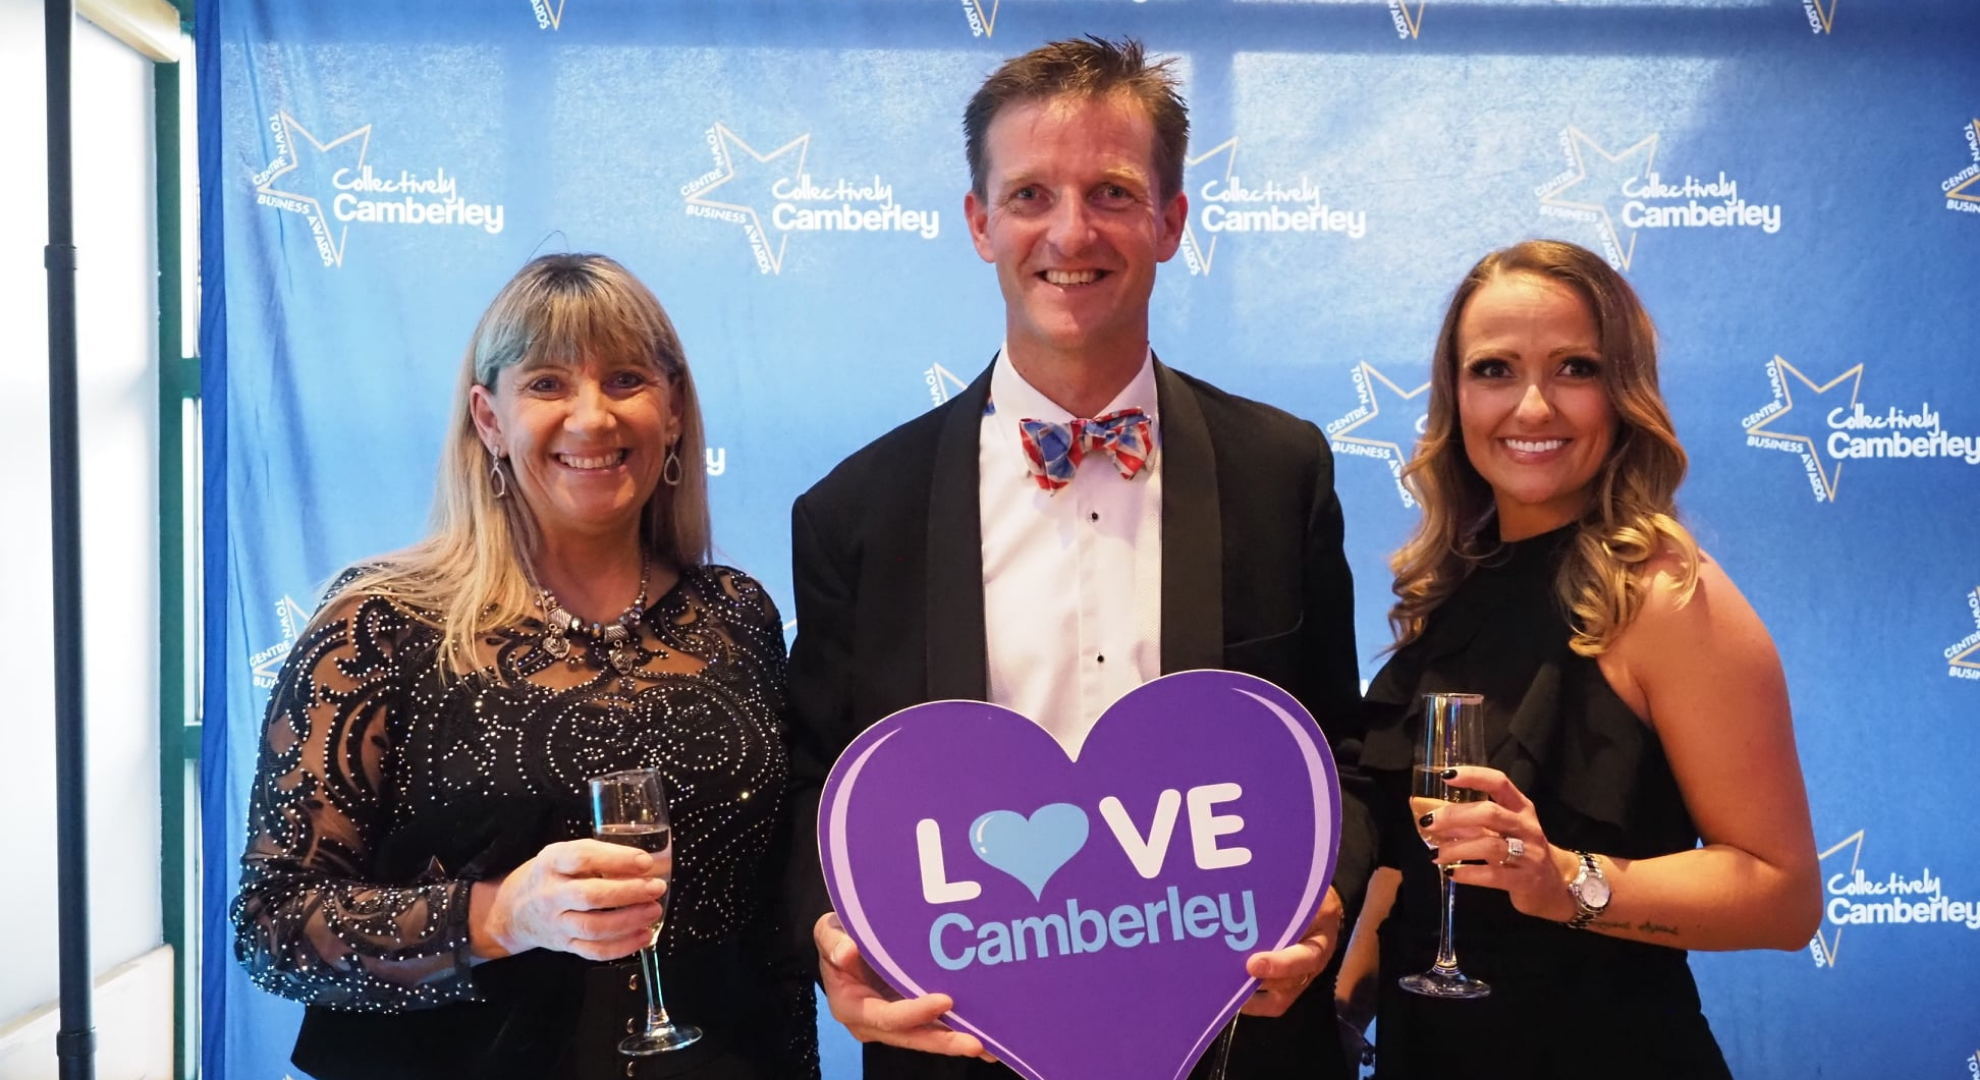 Massage therapy tops table at Camberley Town Business Awards